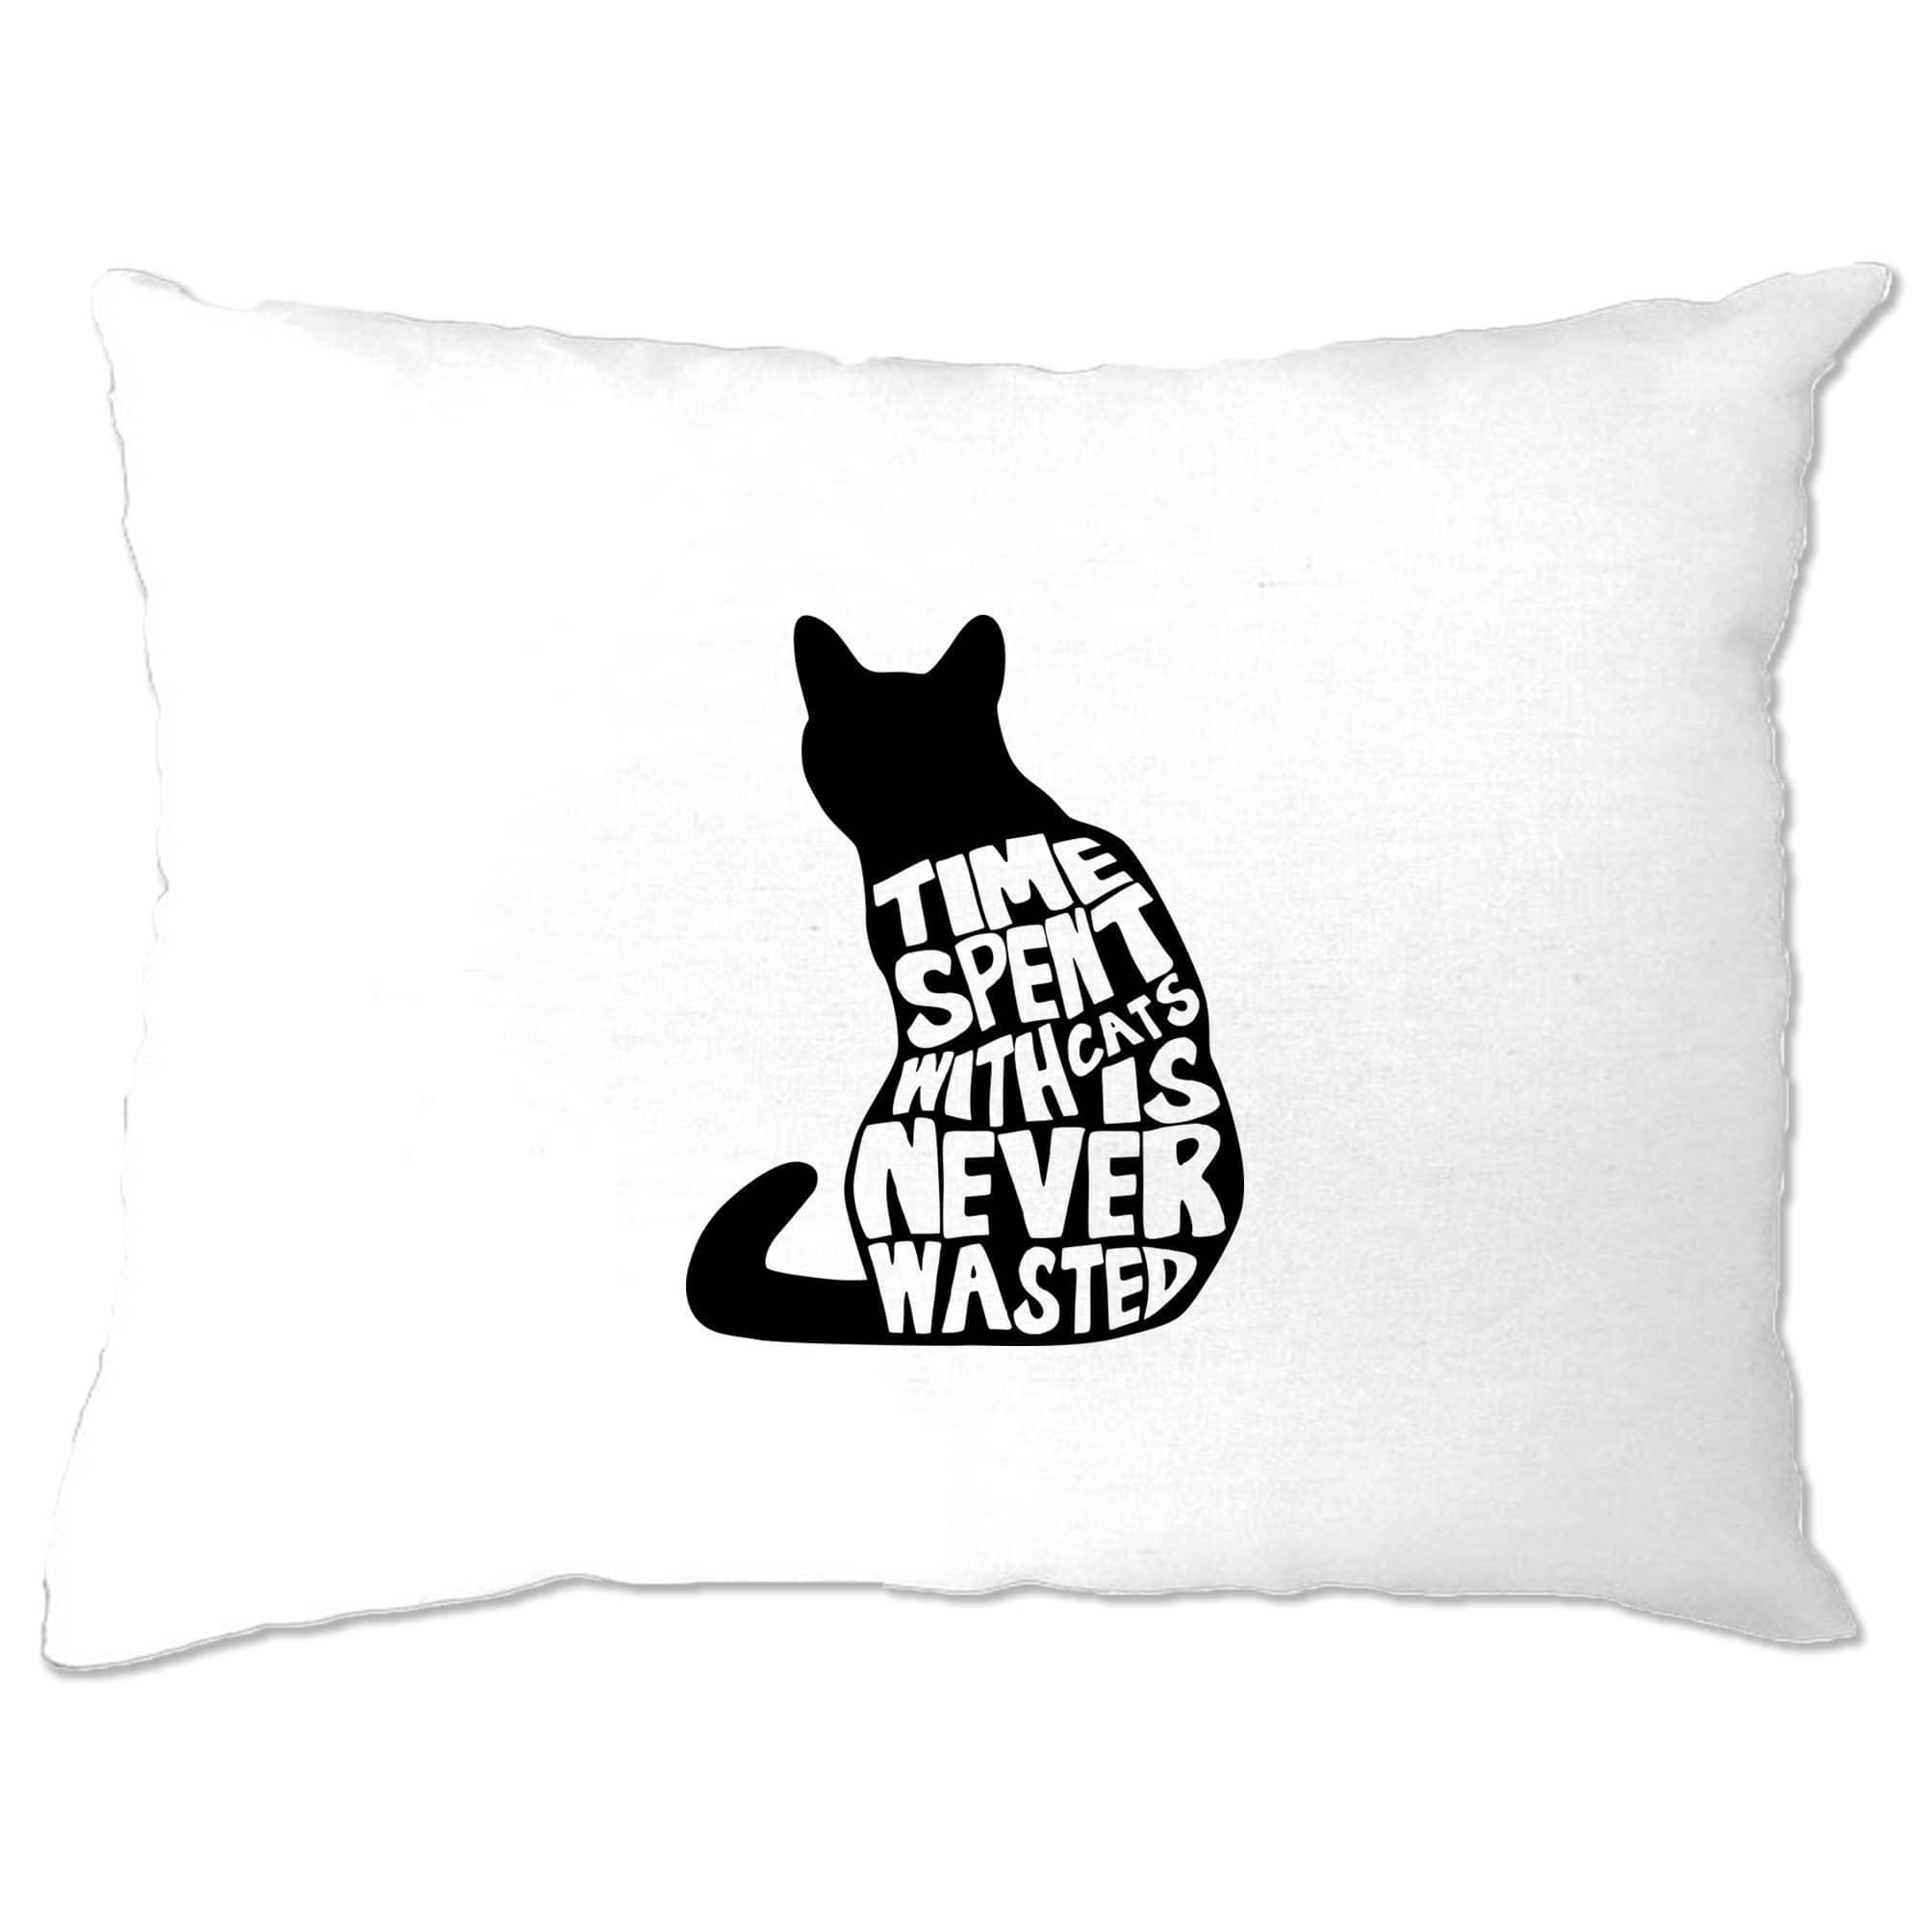 Cat Lover Pillow Case Time Spent With Cats is Never Wasted